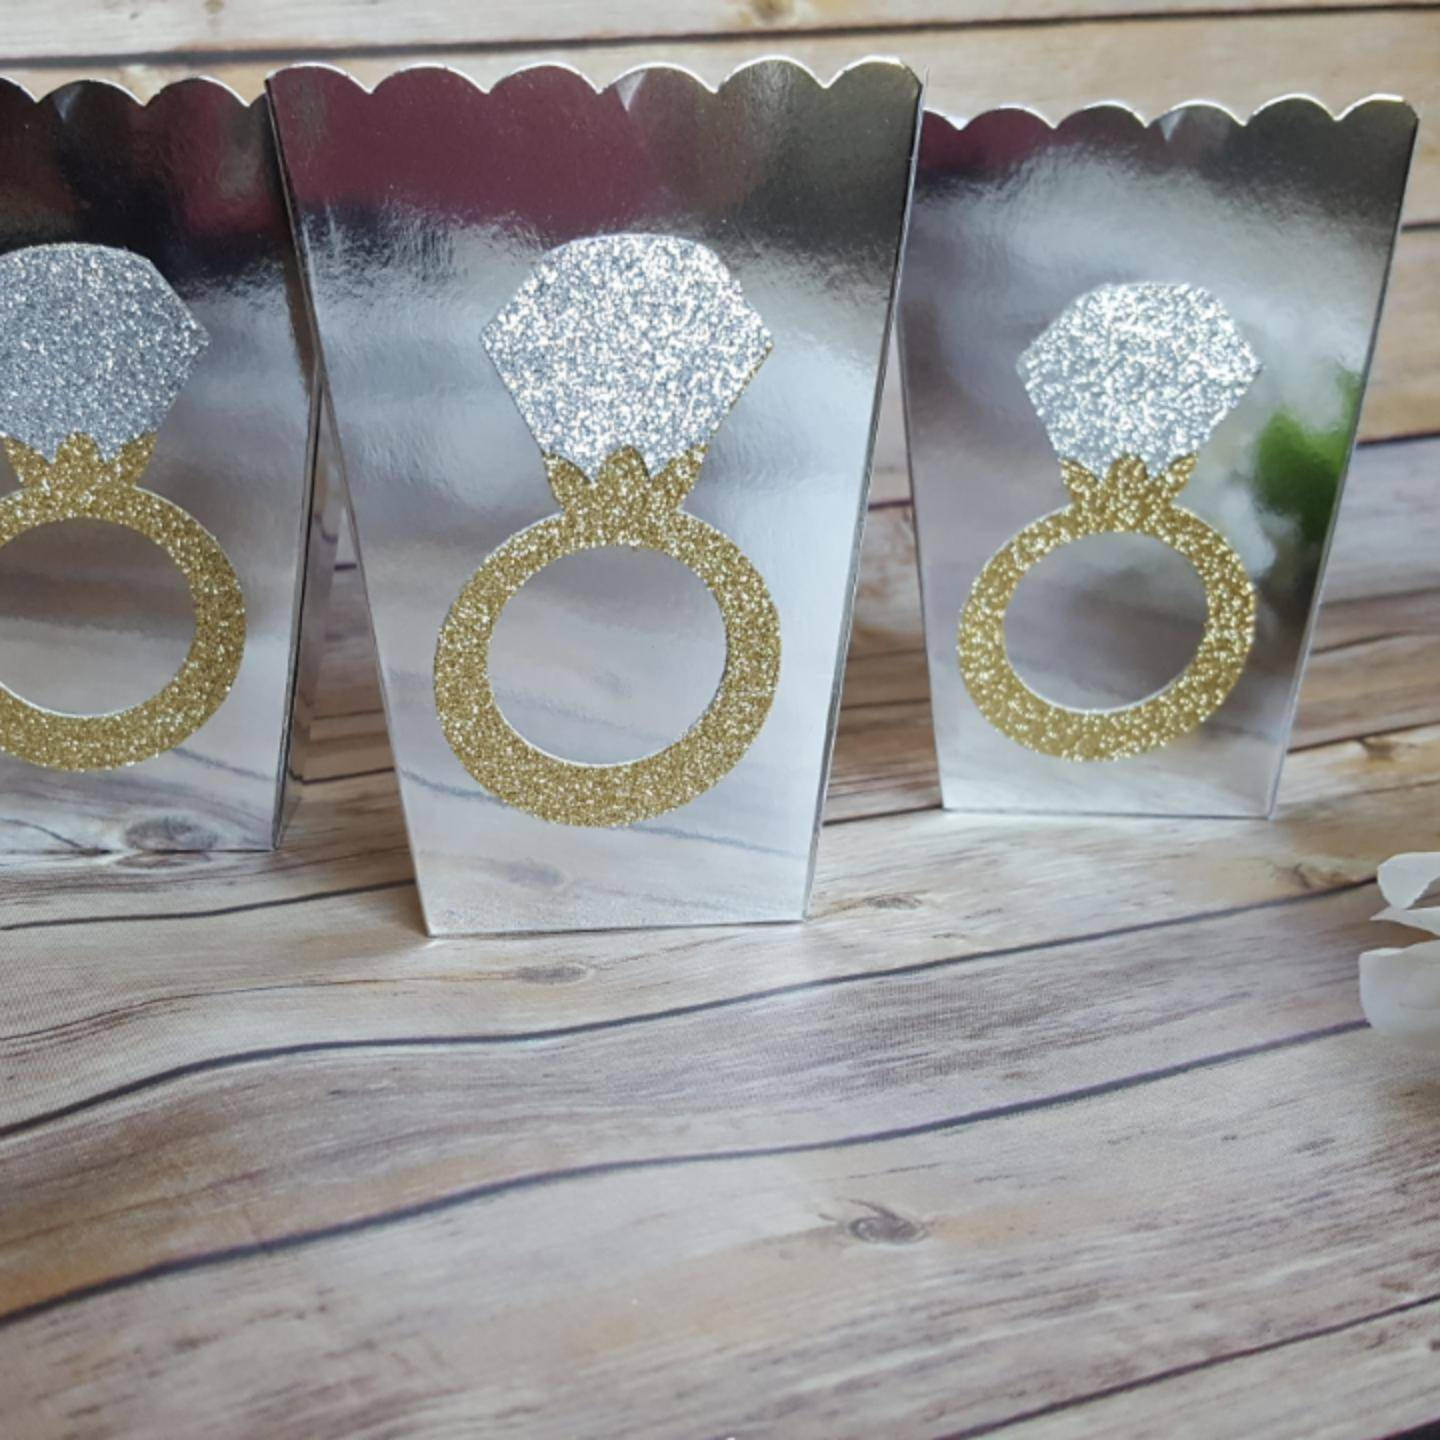 10 Gold Or Silver Glitter Diamond Ring Themed Favor Boxes. Belly Rings. Gold Chinese Wedding Rings. Boy's Engagement Rings. Steel Engagement Rings. Cushion Halo Rings. Middle Rings. Winnie The Pooh Engagement Rings. Date Wedding Rings